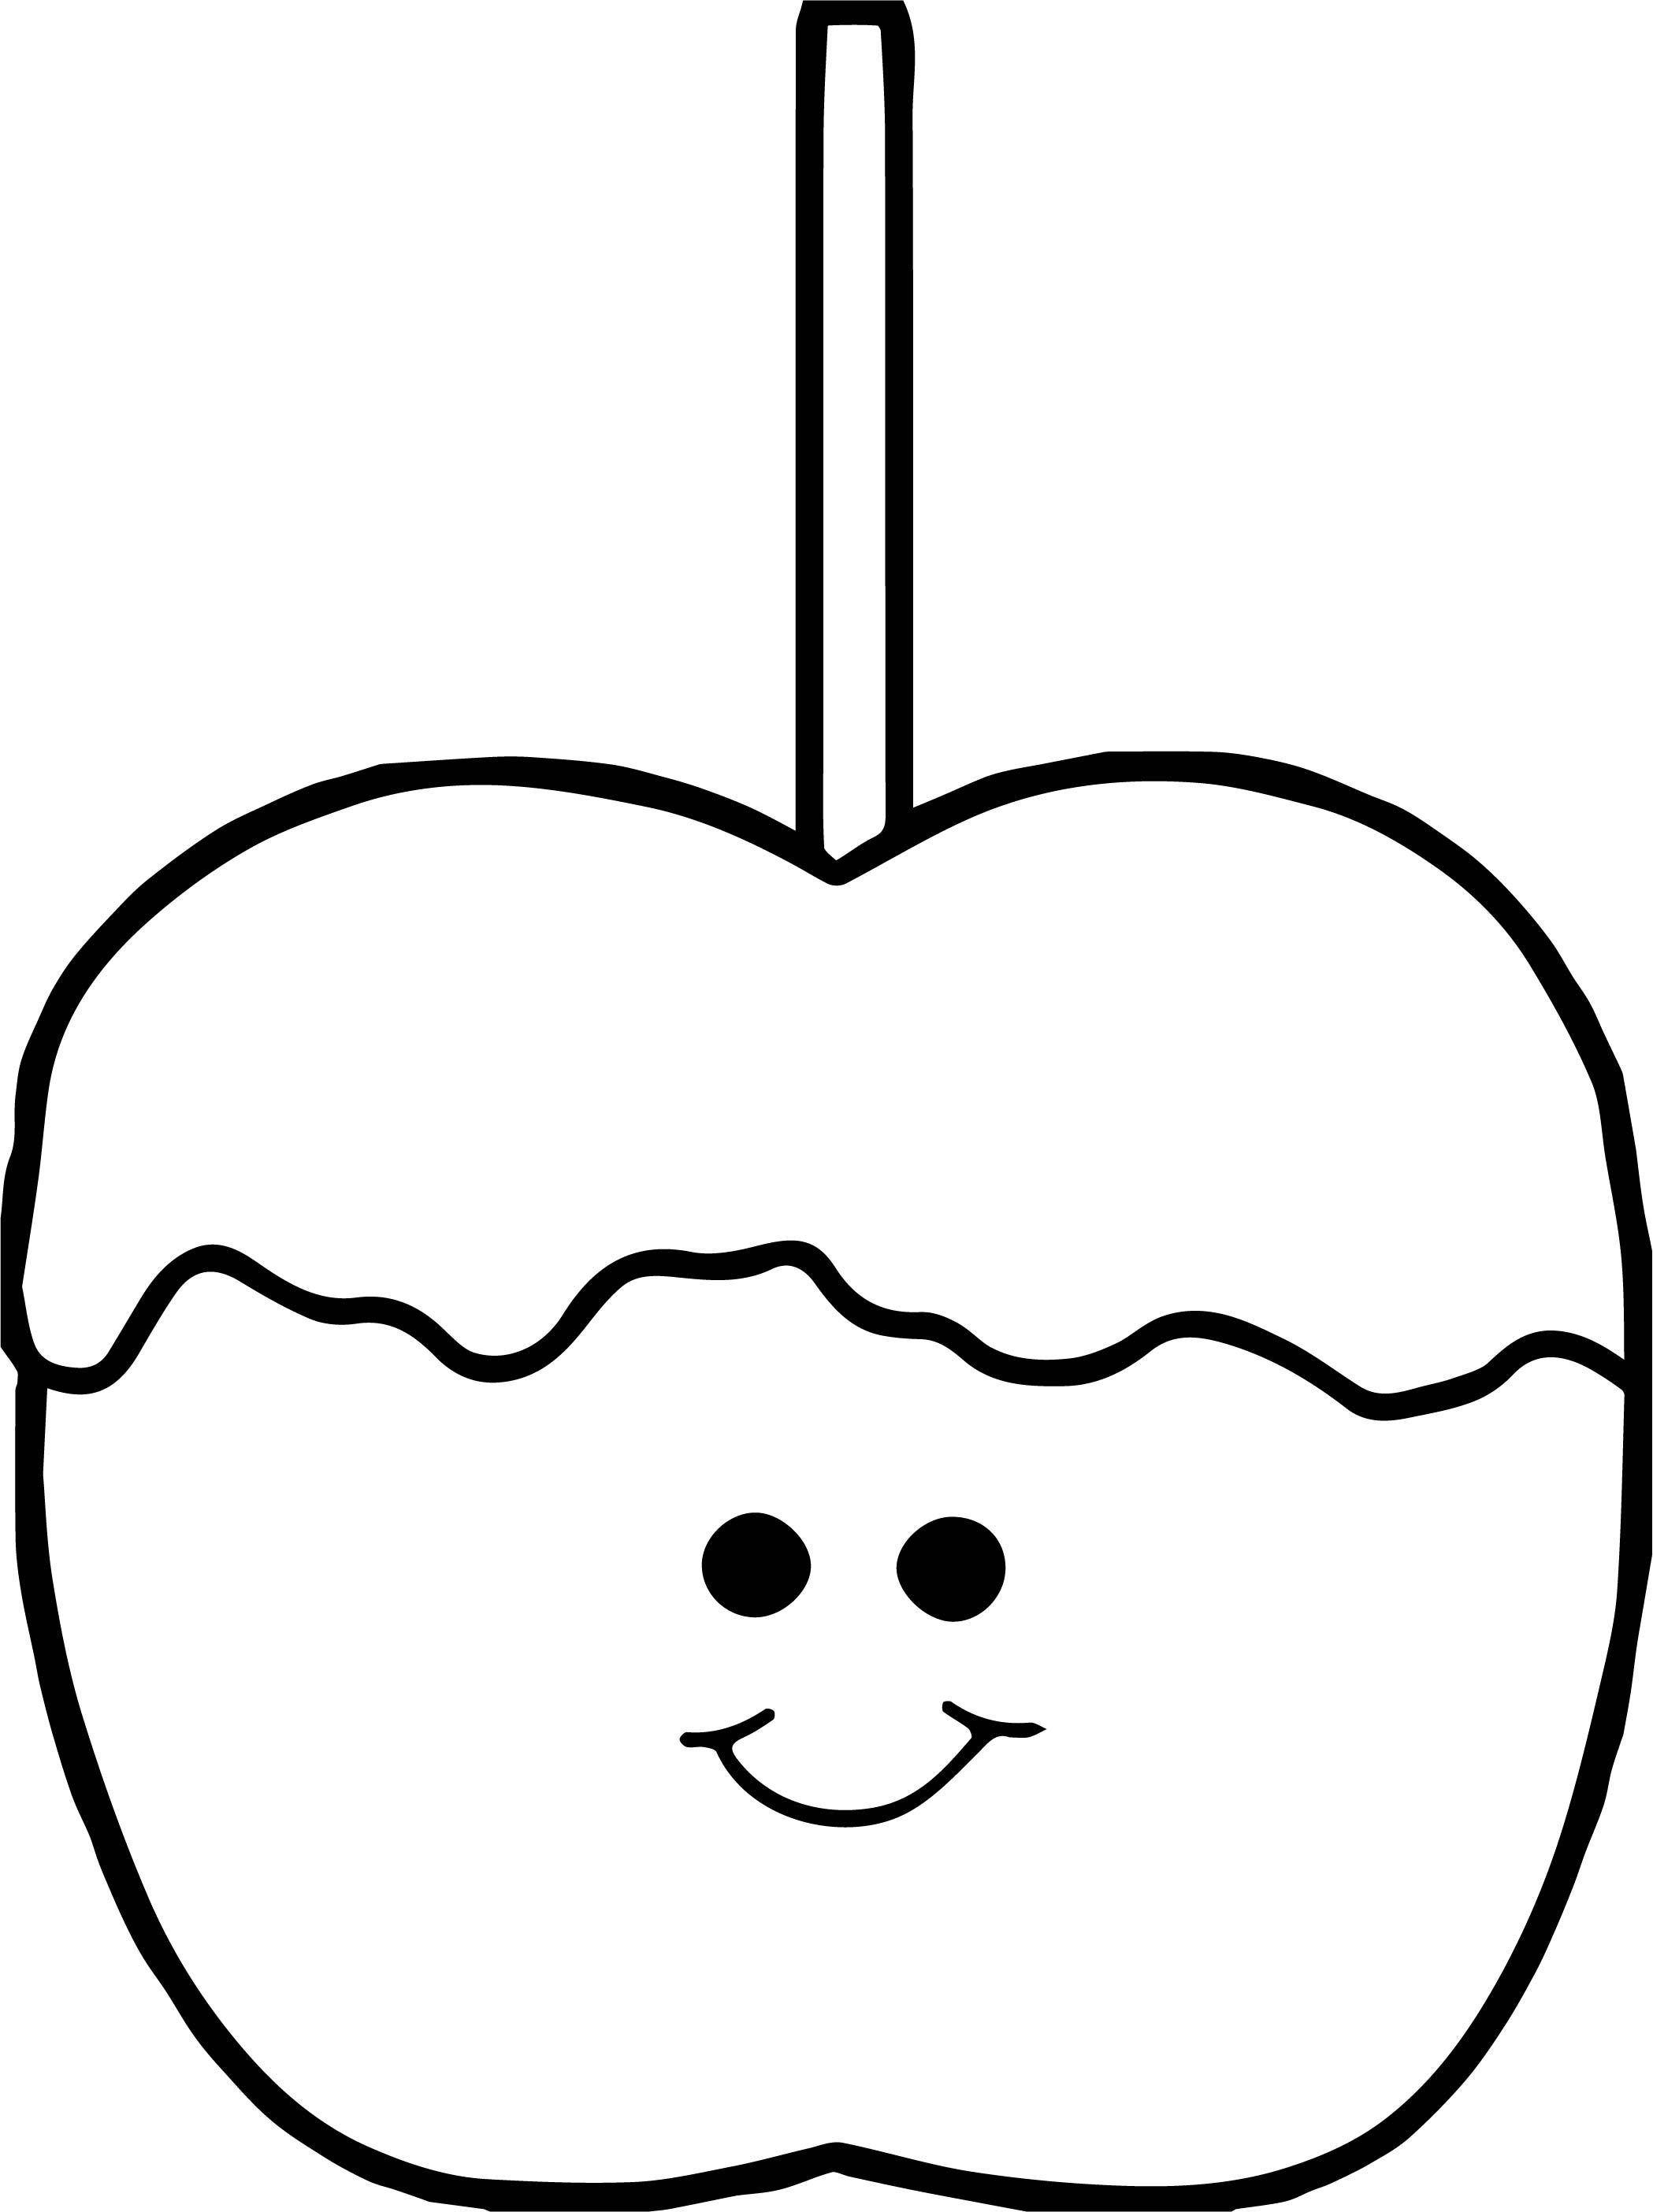 Awesome Cute Caramel Apple Coloring Page Candy Coloring Pages